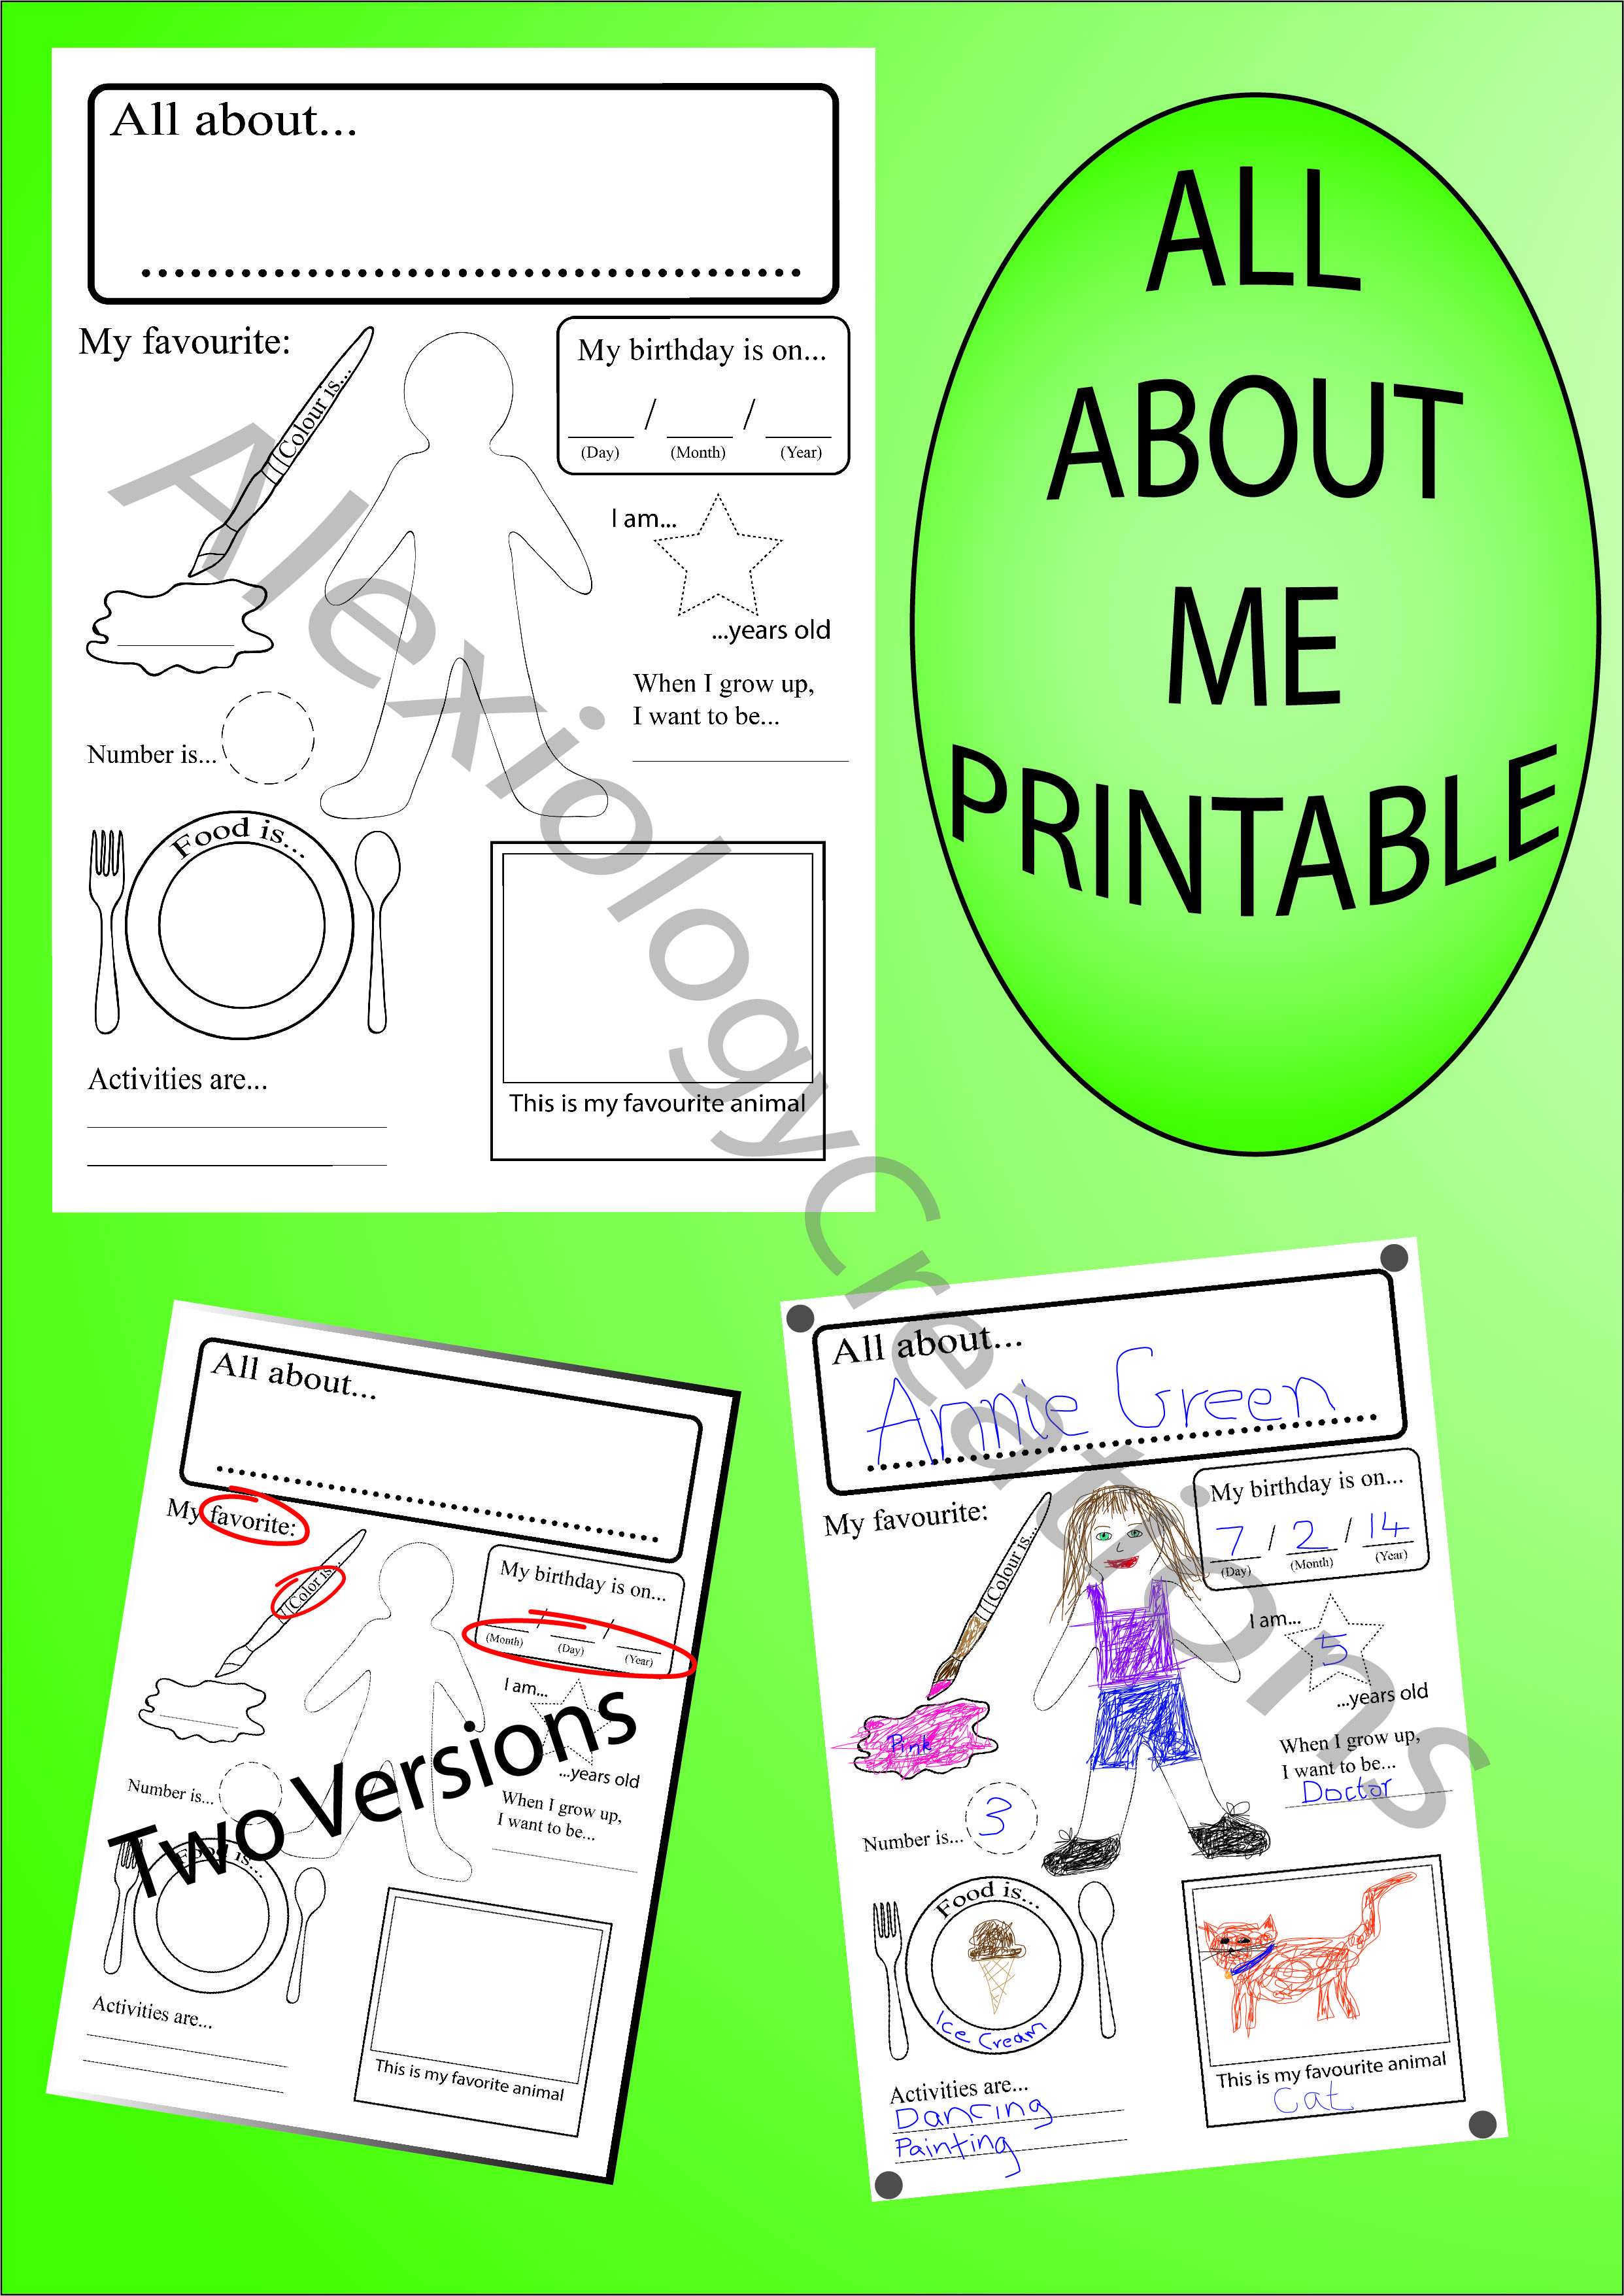 picture relating to All About Me Page Printable referred to as All with regards to me, printable, electronic down load